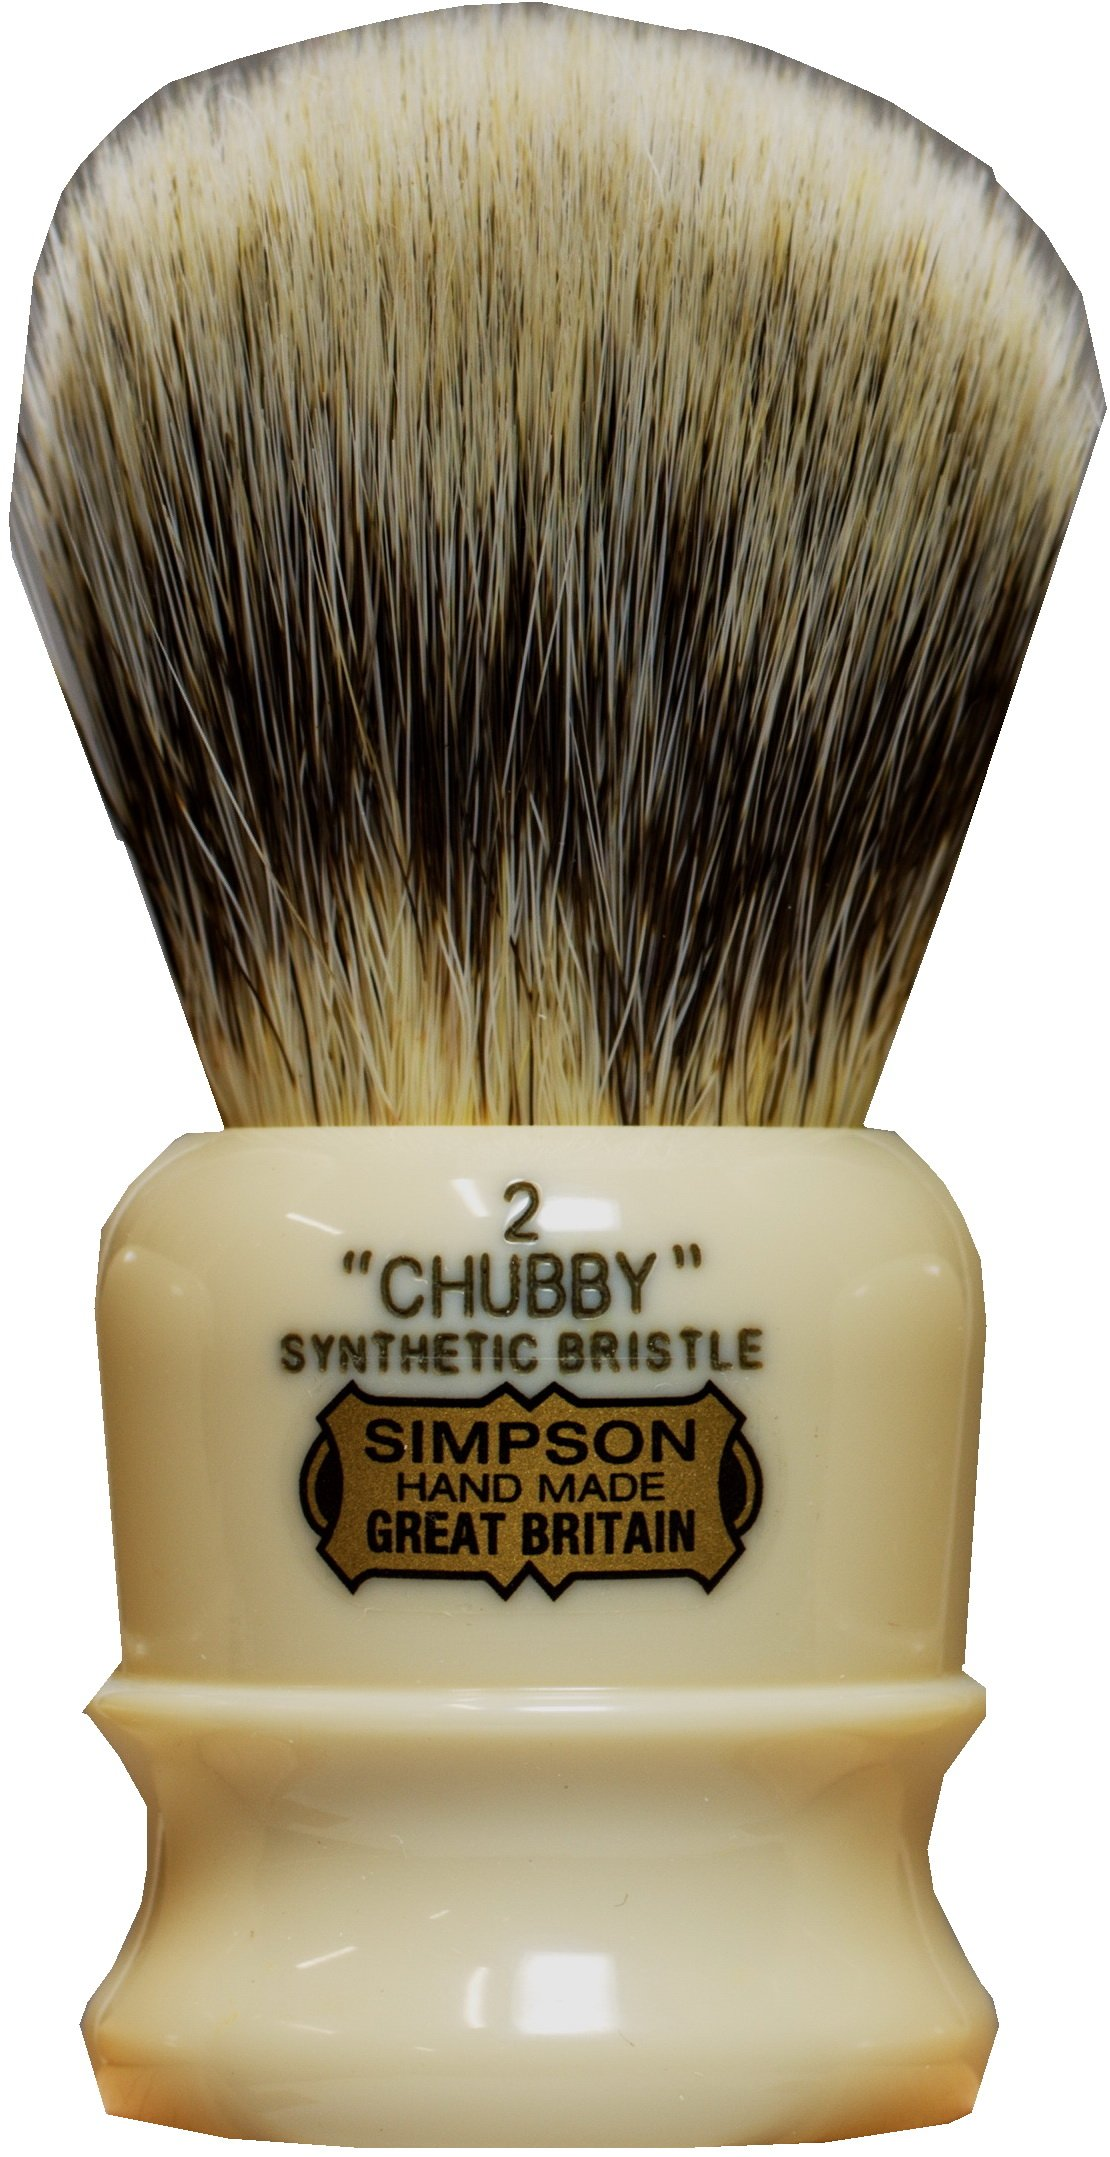 Simpsons Chubby CH2 Synthetic Badger Shaving Brush